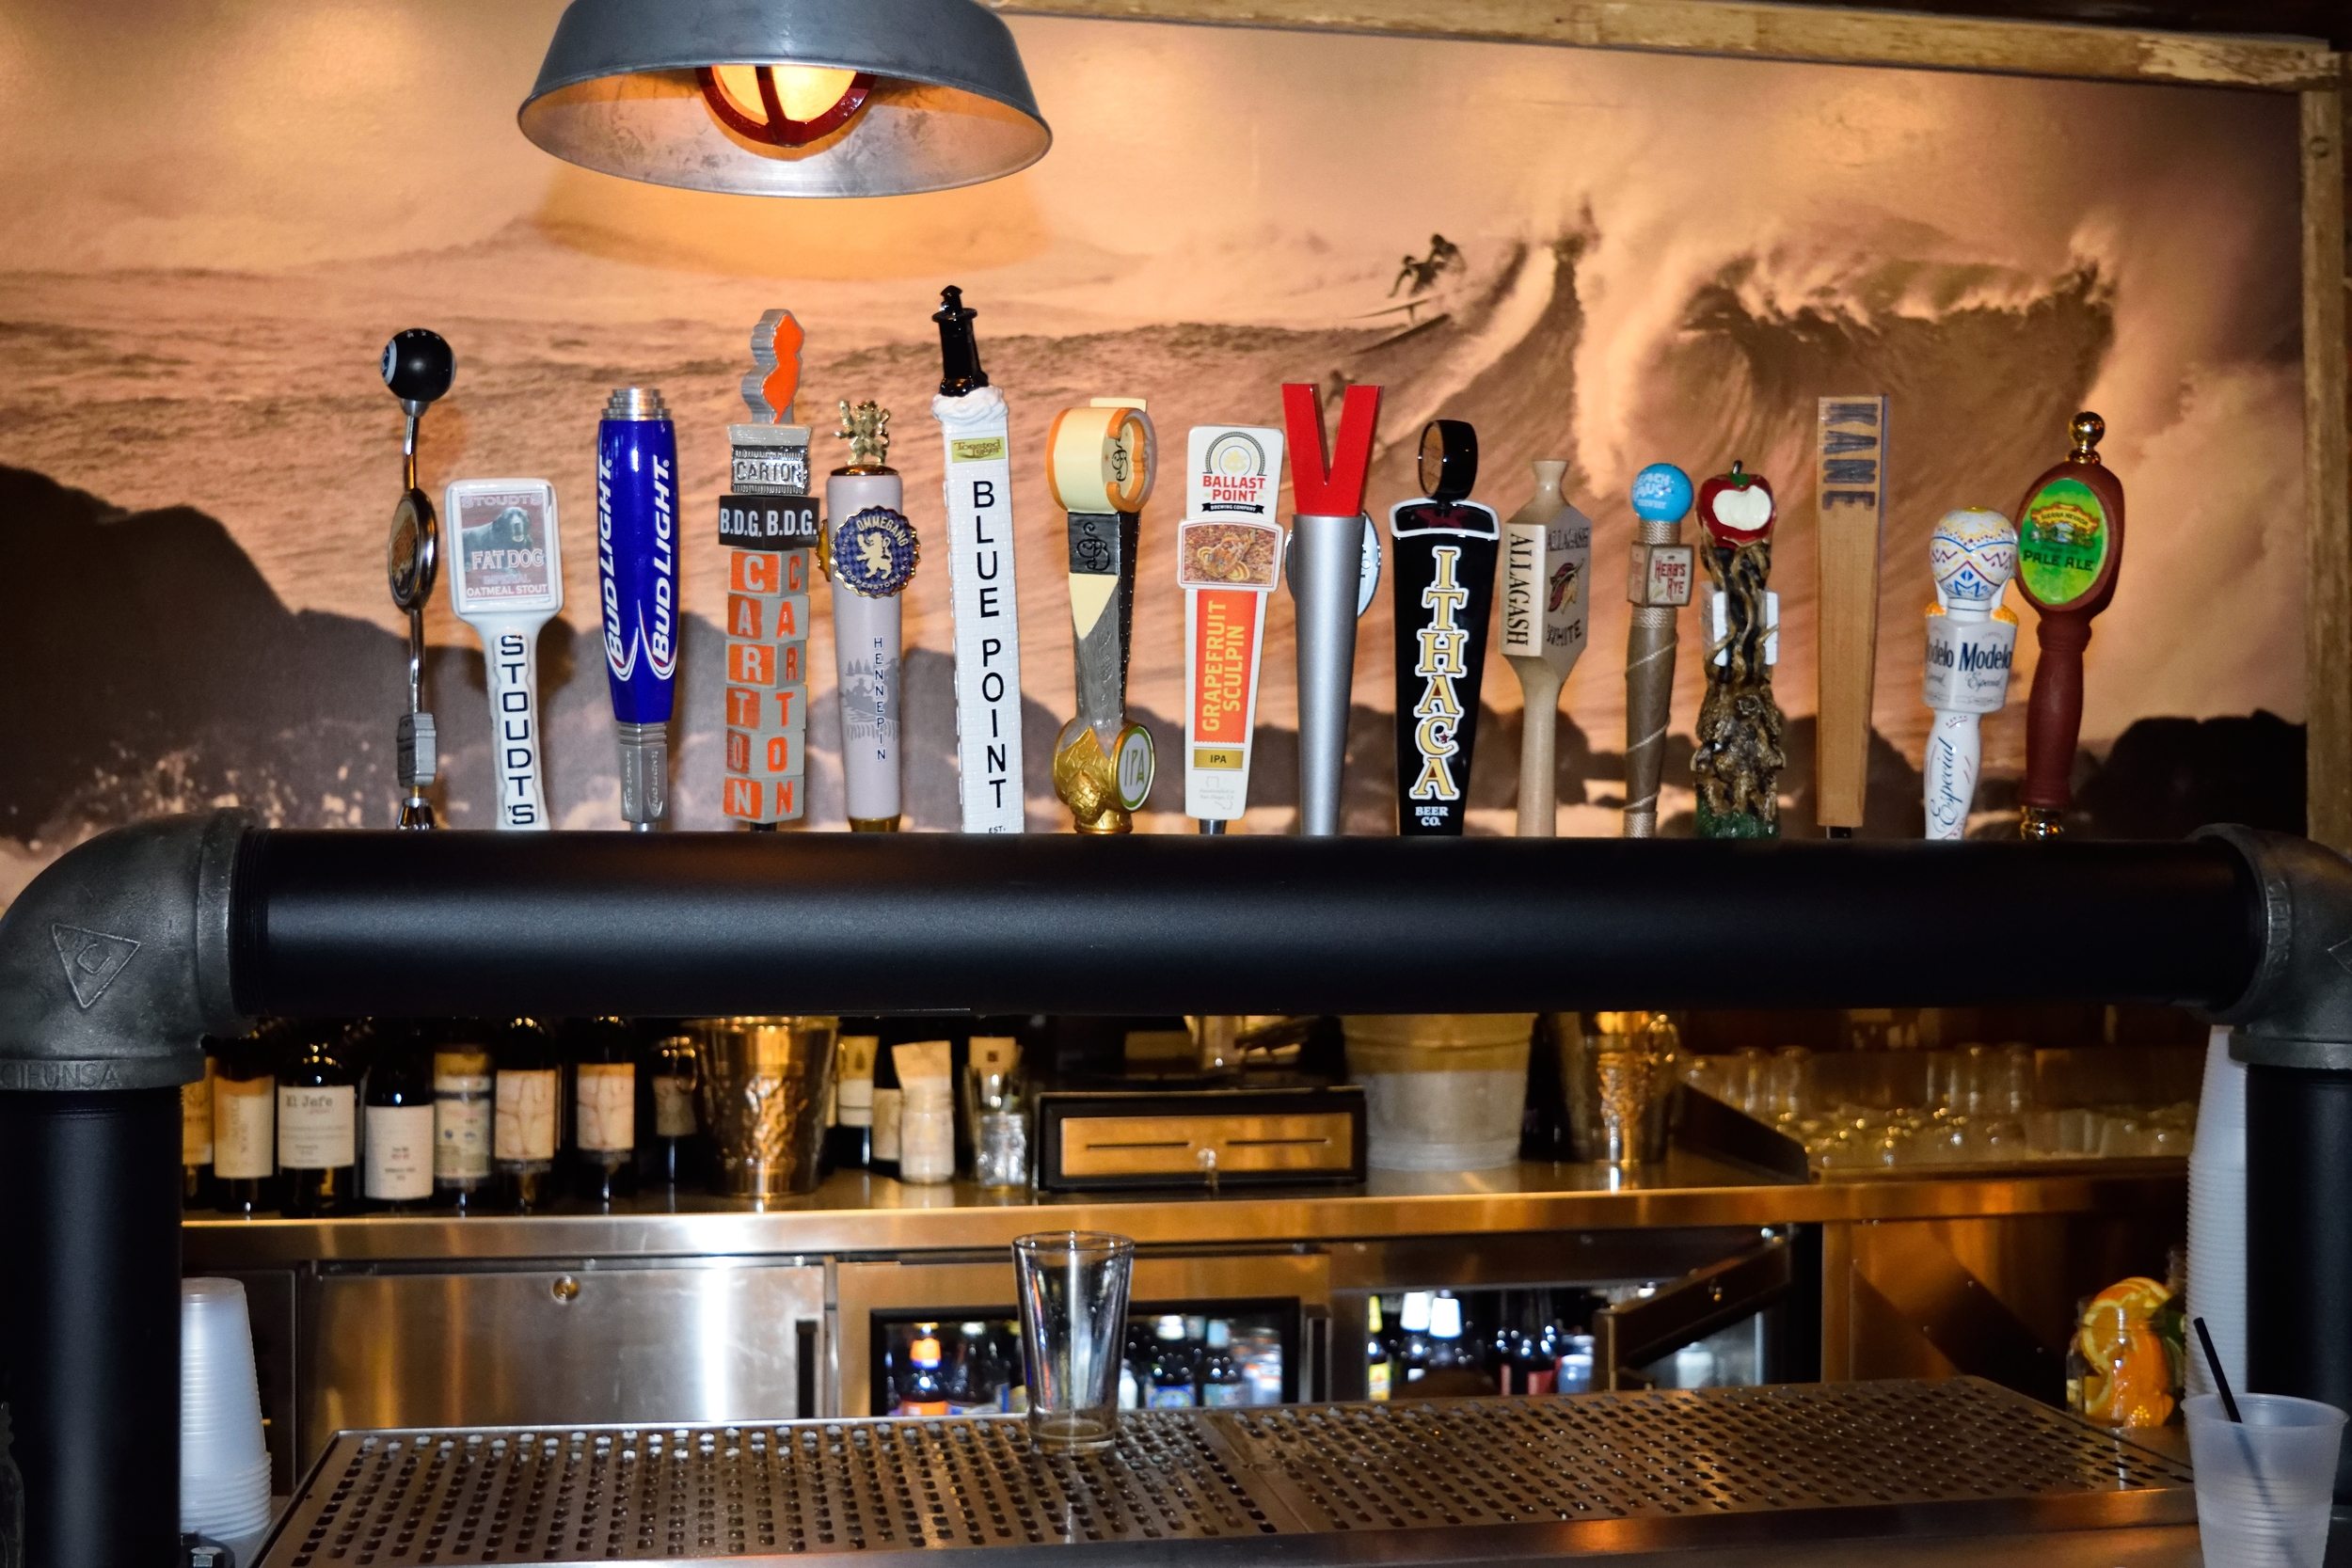 16 beers on draft. Some better than others, but I can dig it.